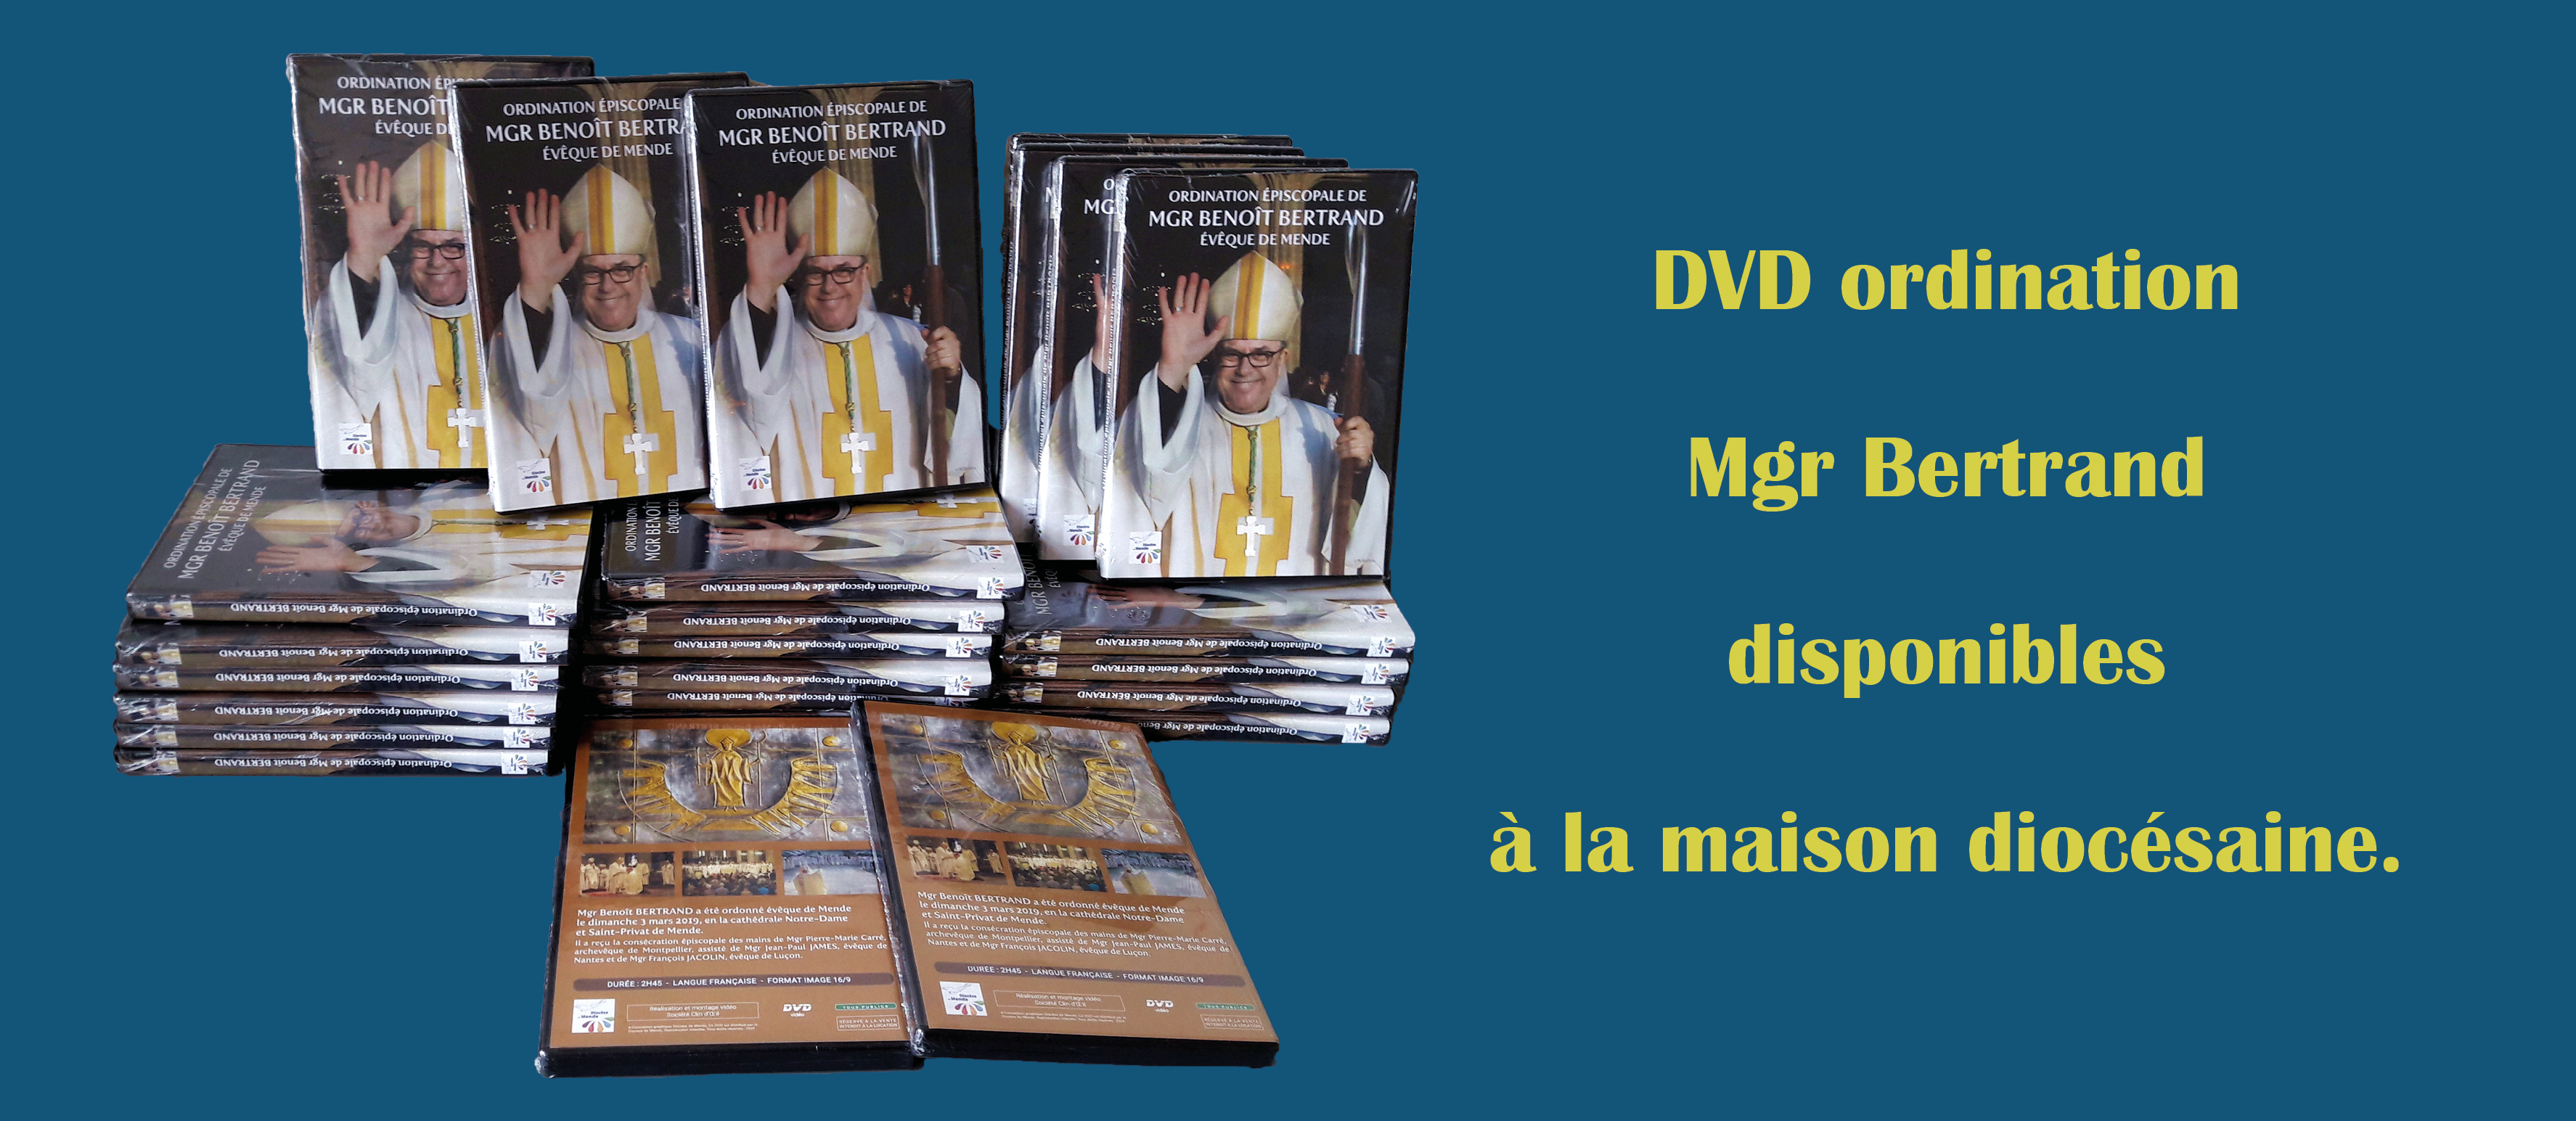 DVD ordination Mgr Bertrand disponibles à la maison diocésaine de Mende